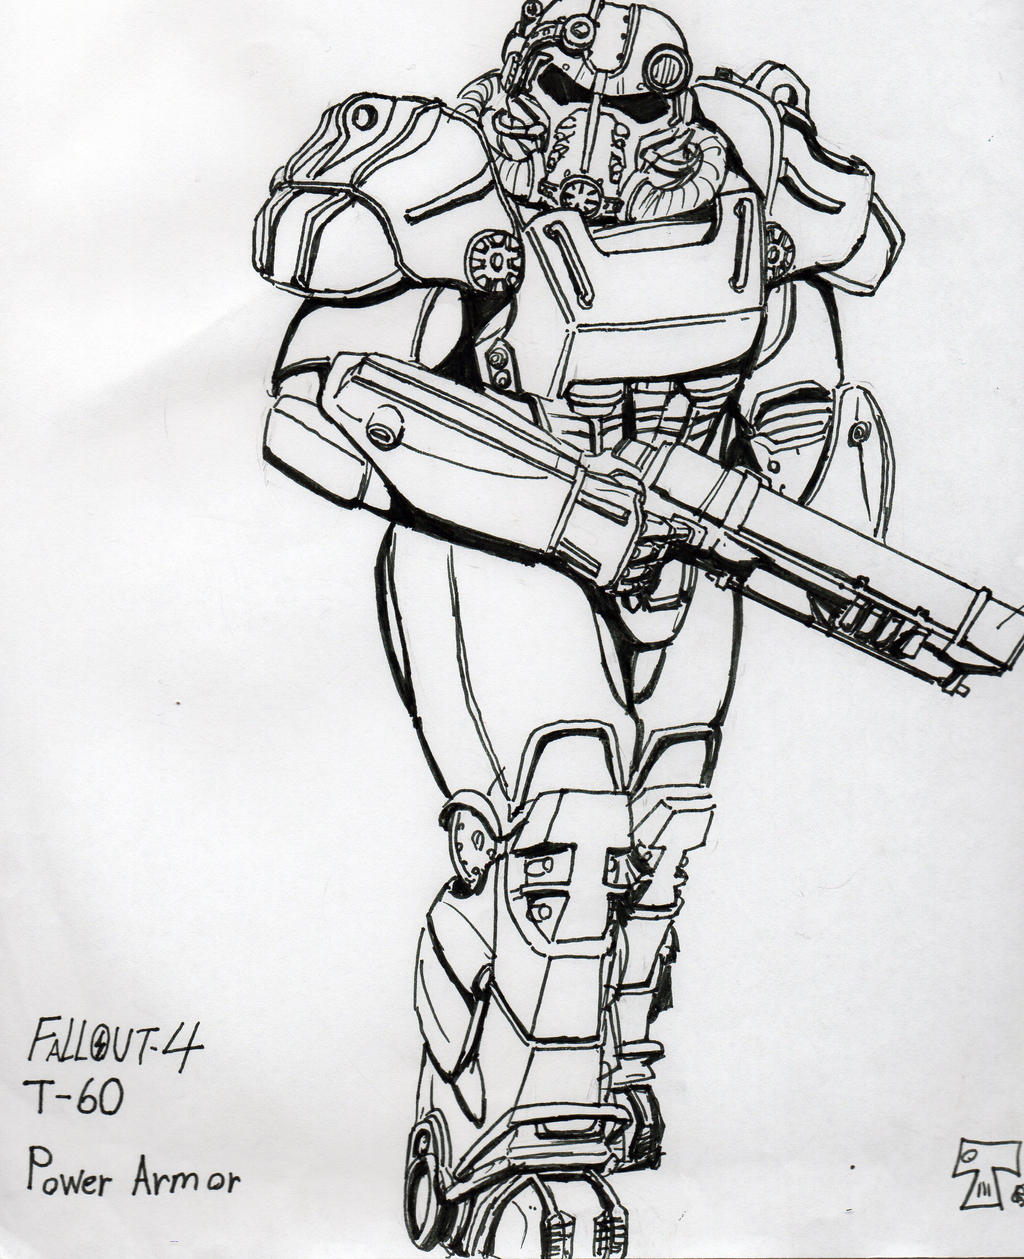 FALLOUT4 T60 Power Amor by TheRenegadeSgt on DeviantArt